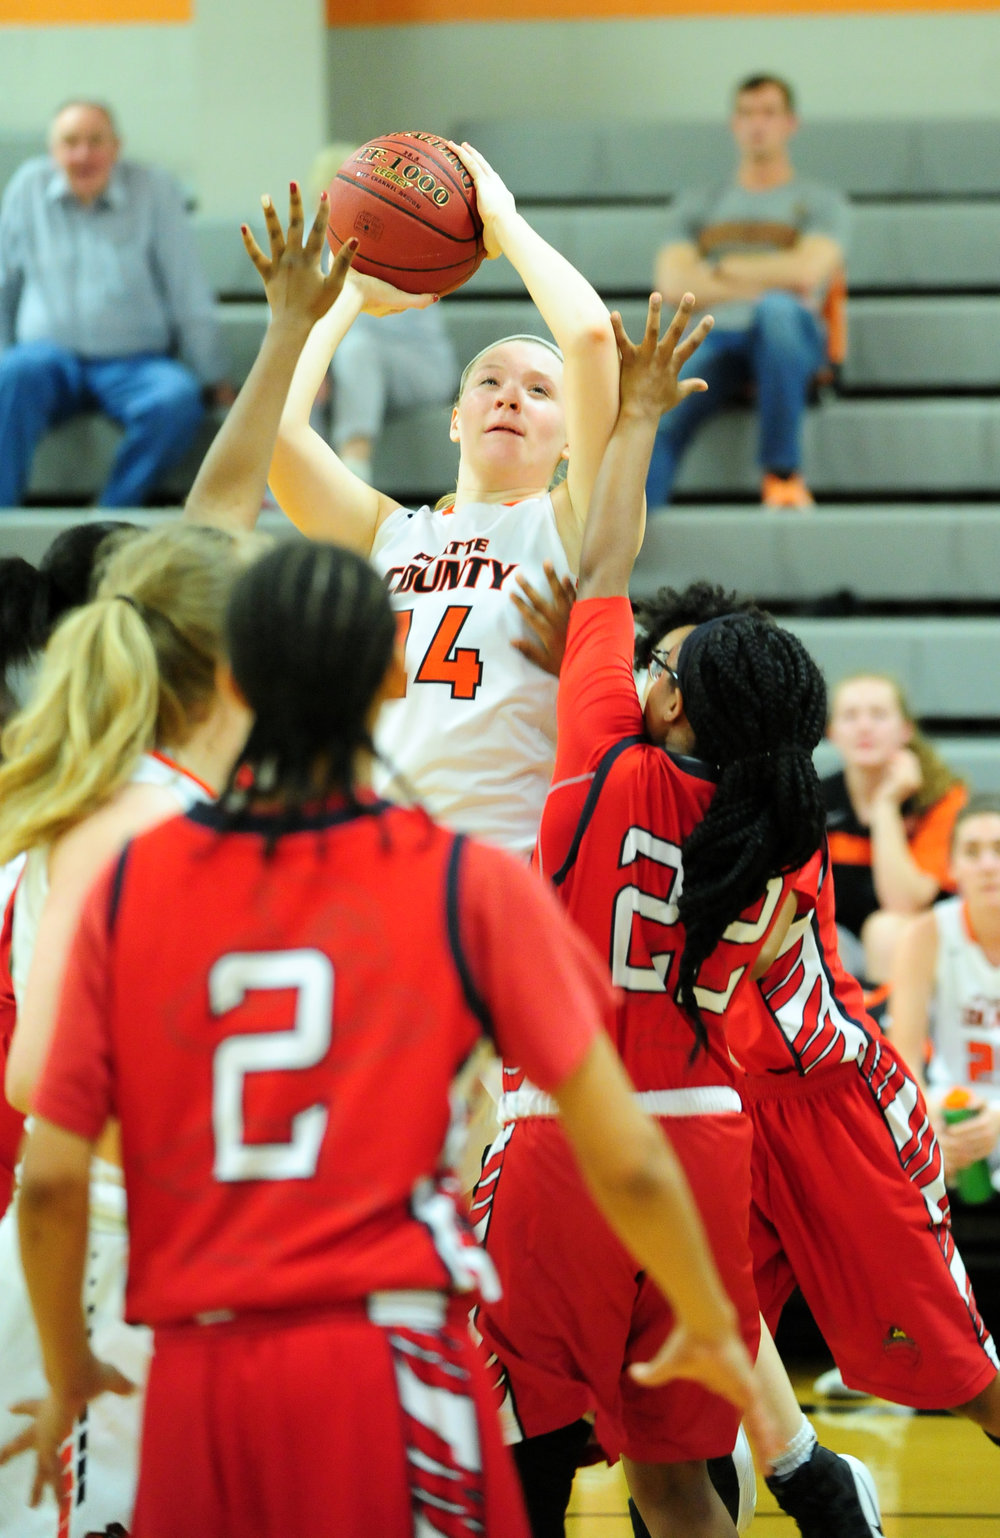 NICK INGRAM/Citizen photo Platte County junior forward Lauren Walker takes a shot over the Raytown defense on Monday, Feb. 20 at Platte County High School.